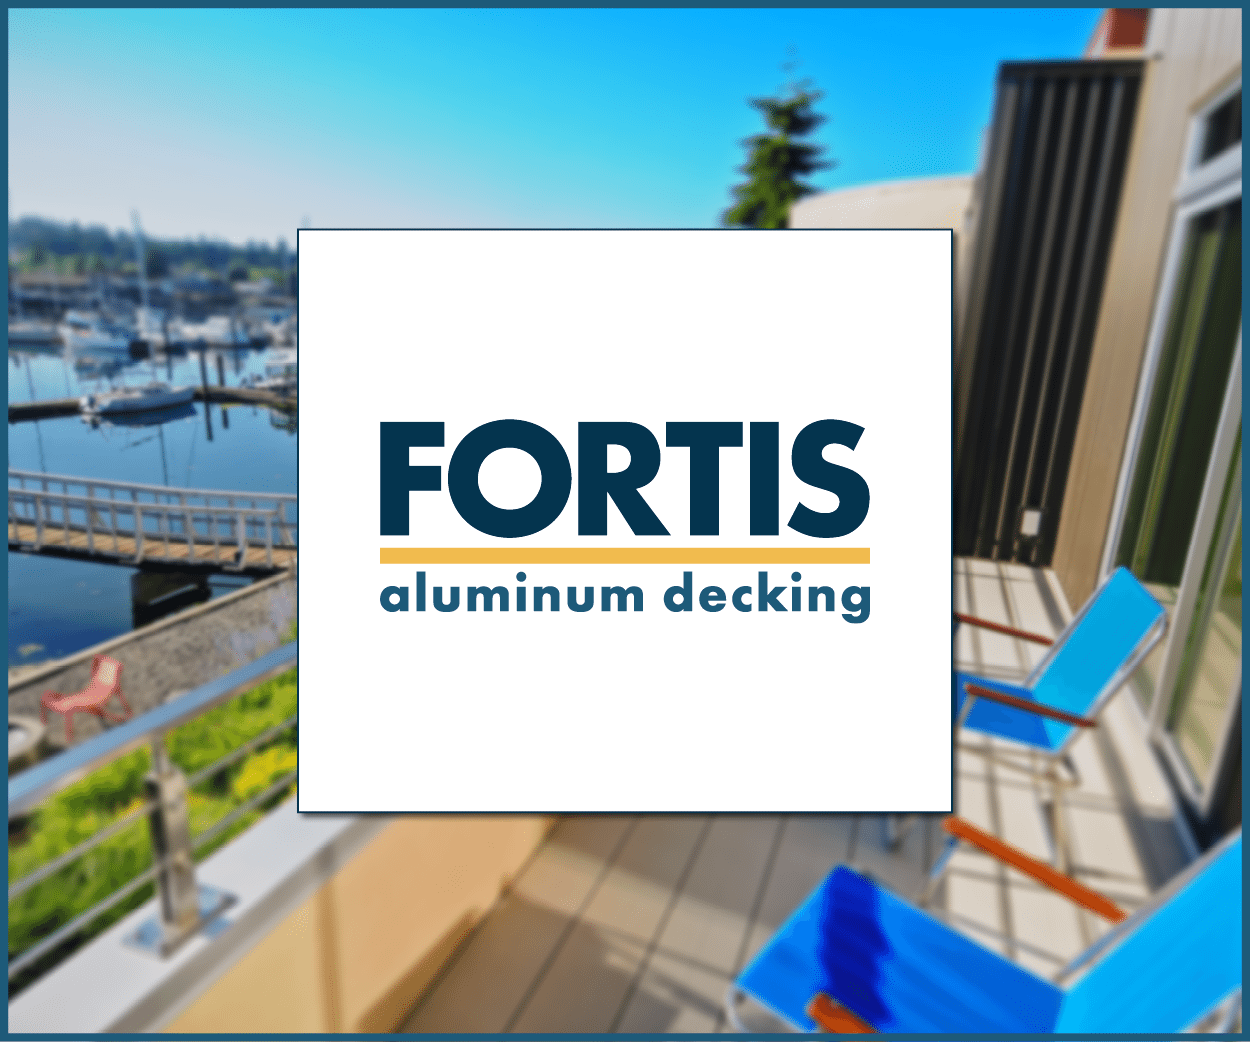 Fortis Aluminum decking - interlocking deck board system